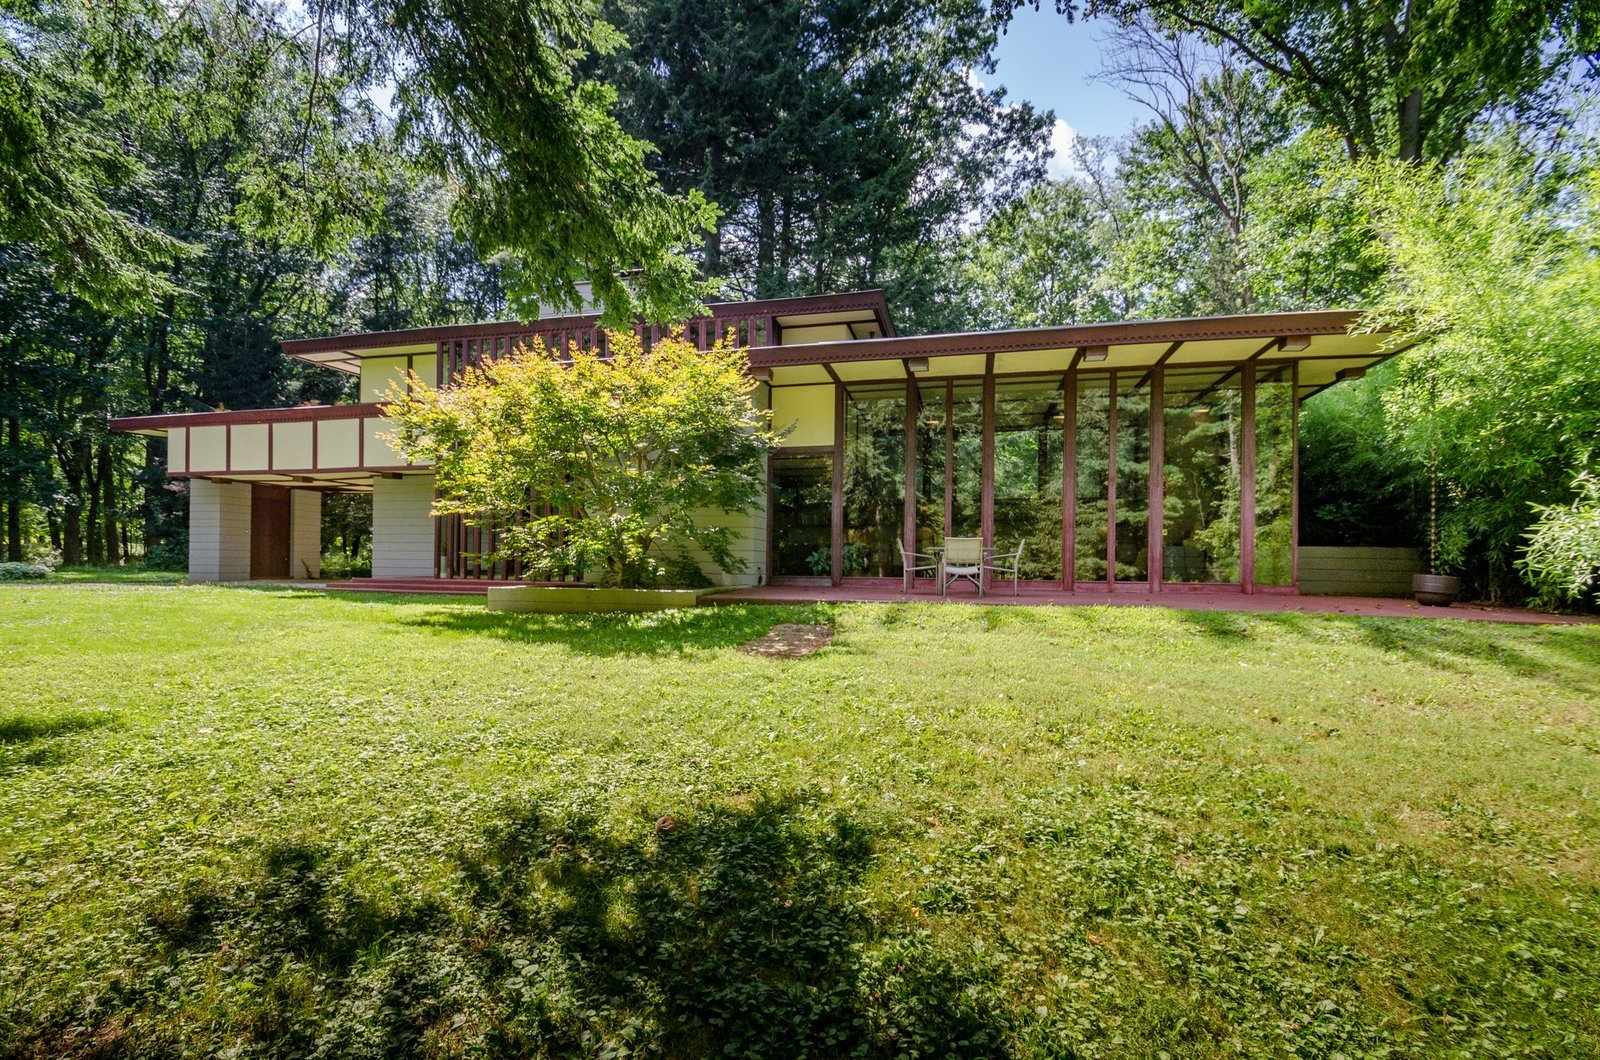 The frank lloyd wright designed louis penfield house in - Frank lloyd wright houses for sale ...